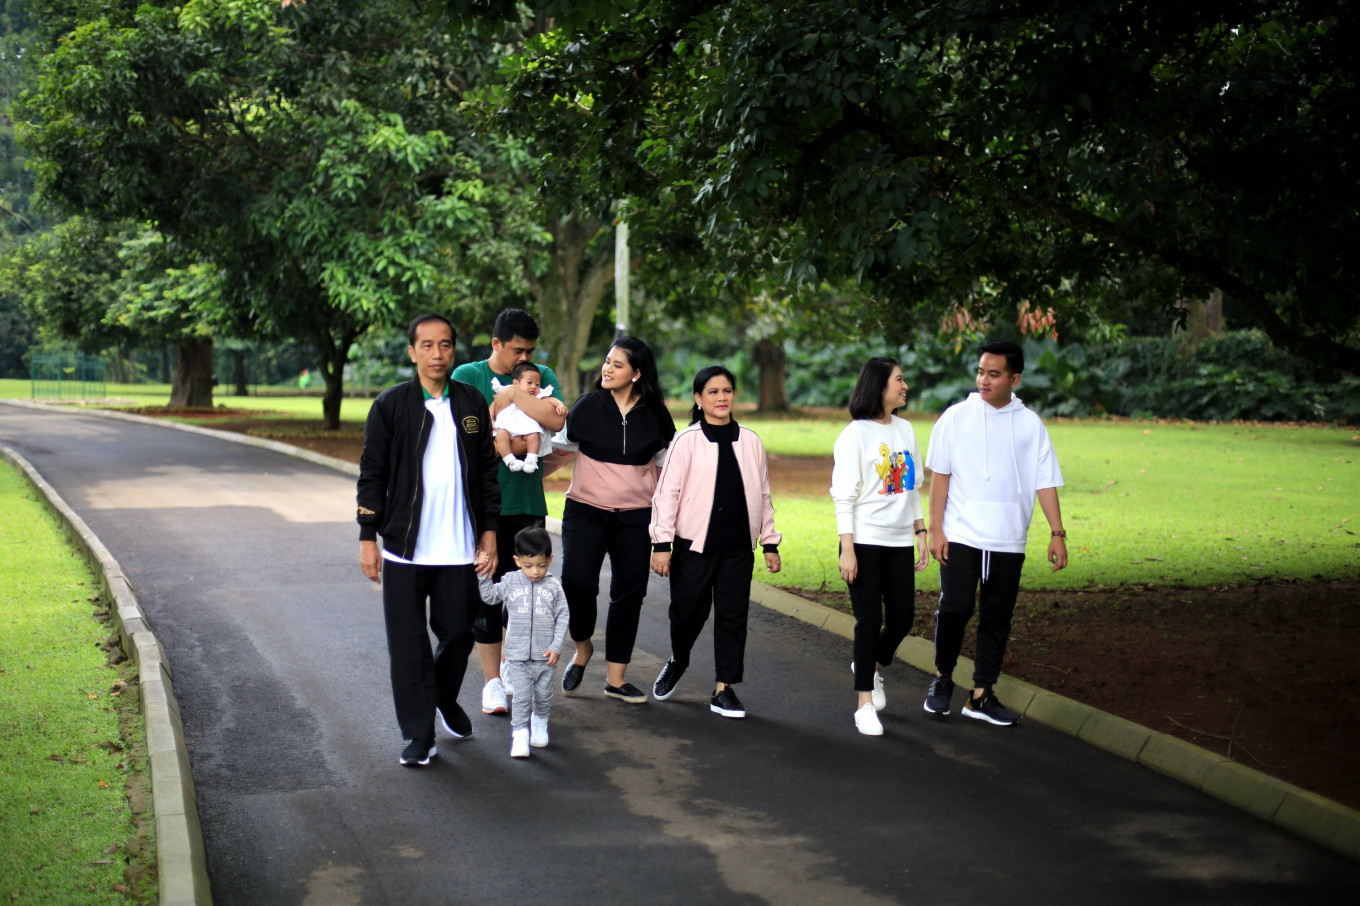 Jokowi vows he 'won't be campaigning' for son, son-in-law in upcoming mayoral races